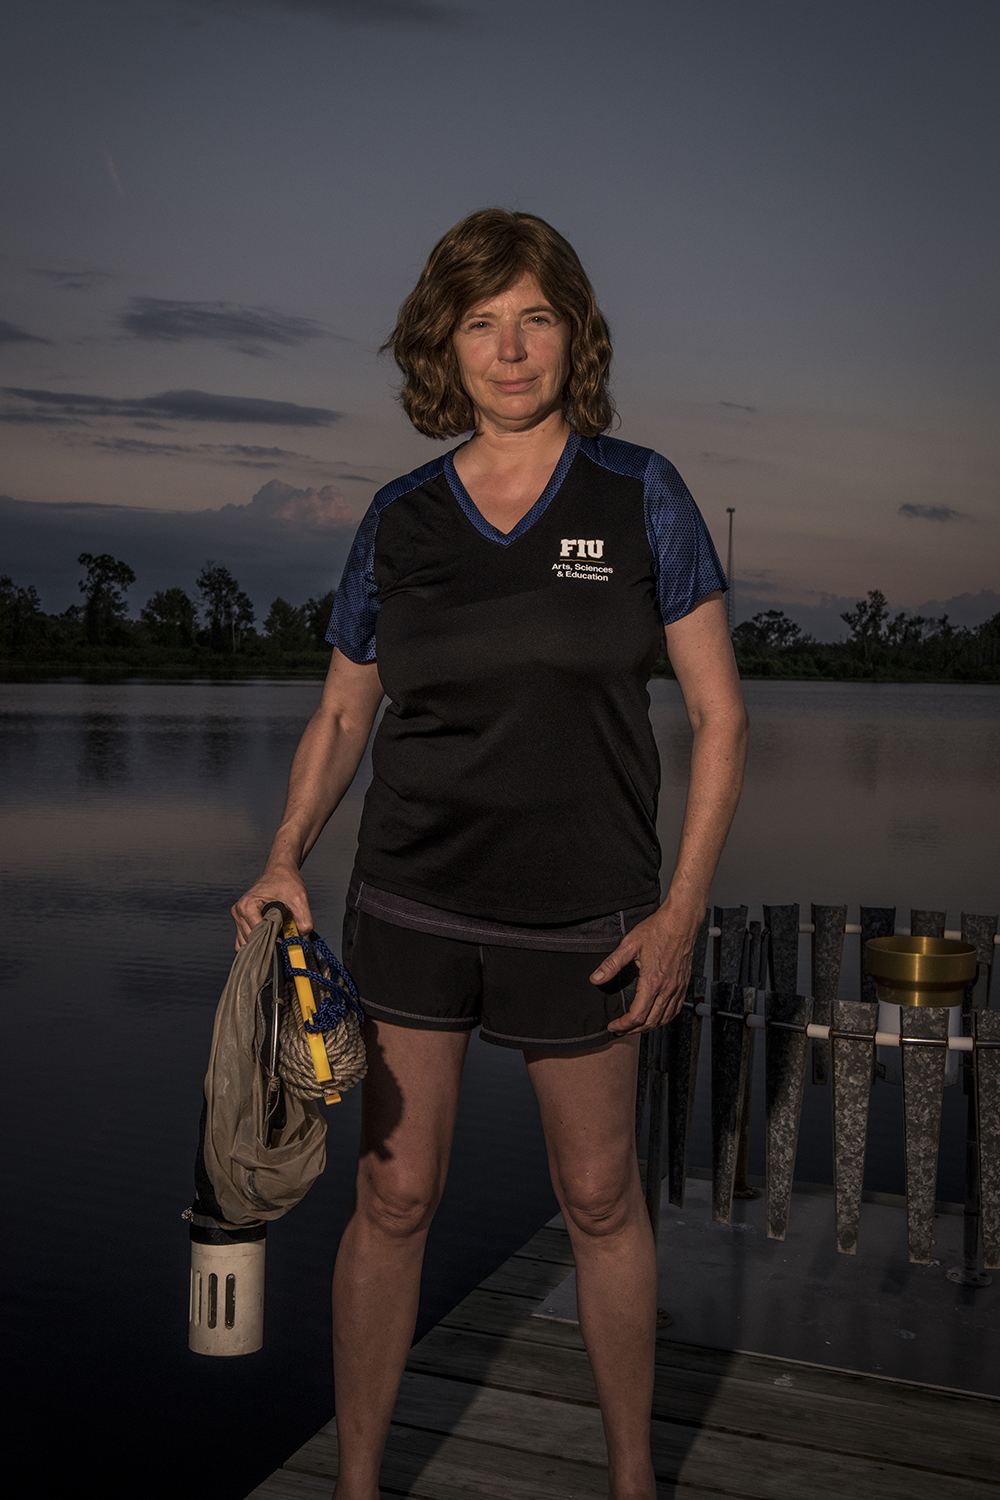 Evelyn Gaiser    Limnology Researcher from Florida International University   Archbold Biological Station  2018/11/10